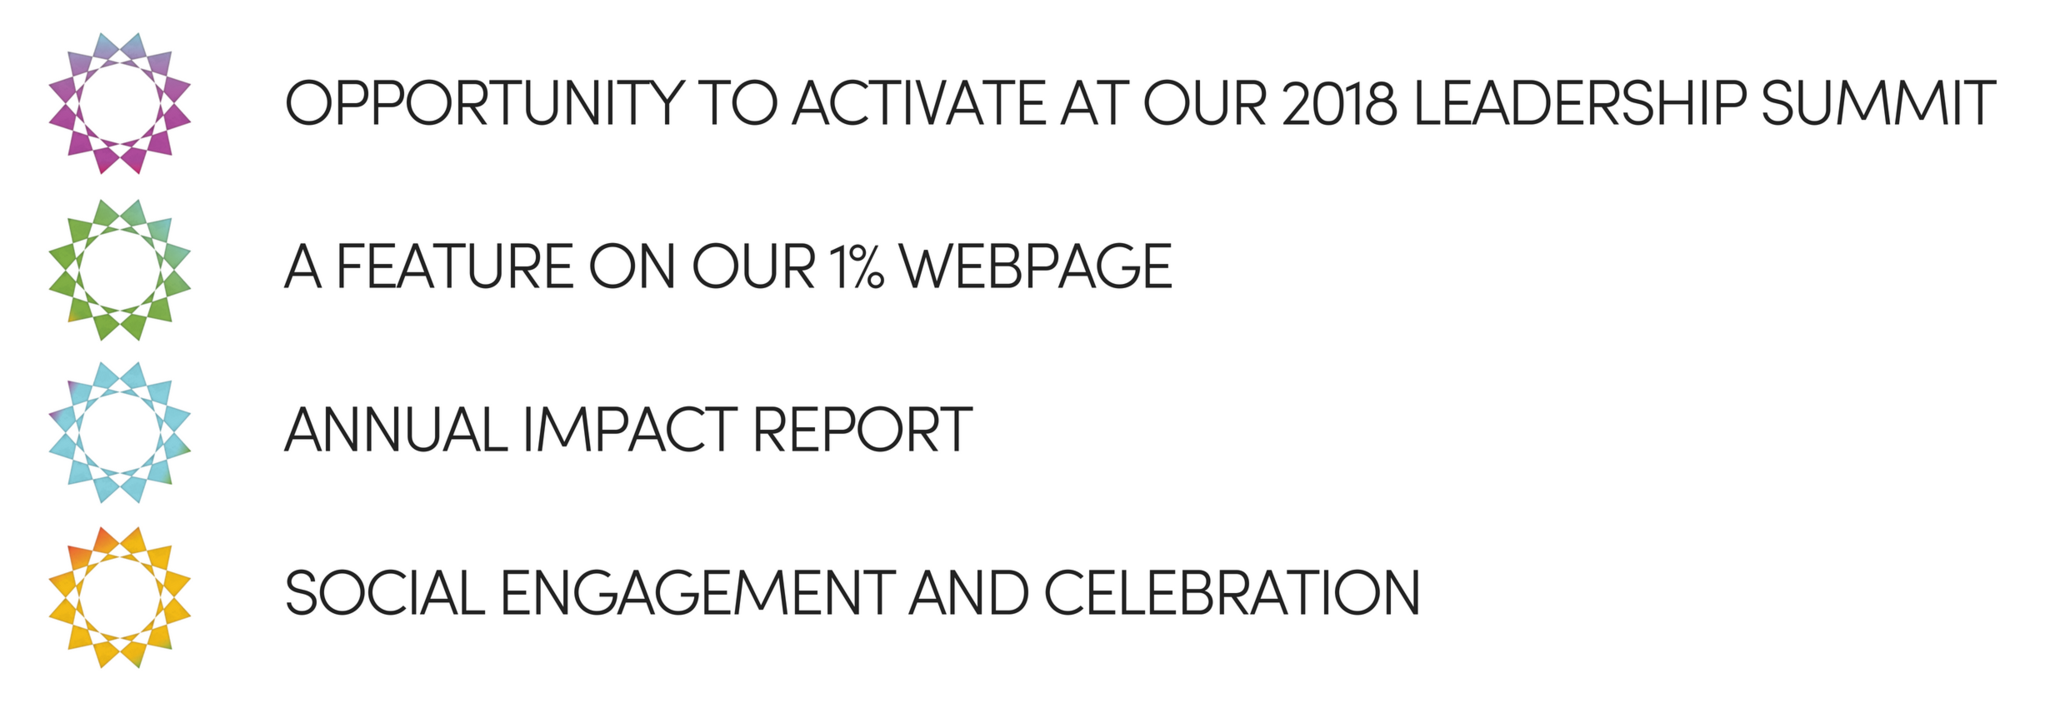 FEATURE ON OUR 1% WEBPAGEOPPORTUNTITY TO ACTIVATE AT OUR 2018 LEADERSHIP SUMMITANNUAL IMPACT REPORTSOCIAL ENGAGEMENT AND CELEBRATION (2).png